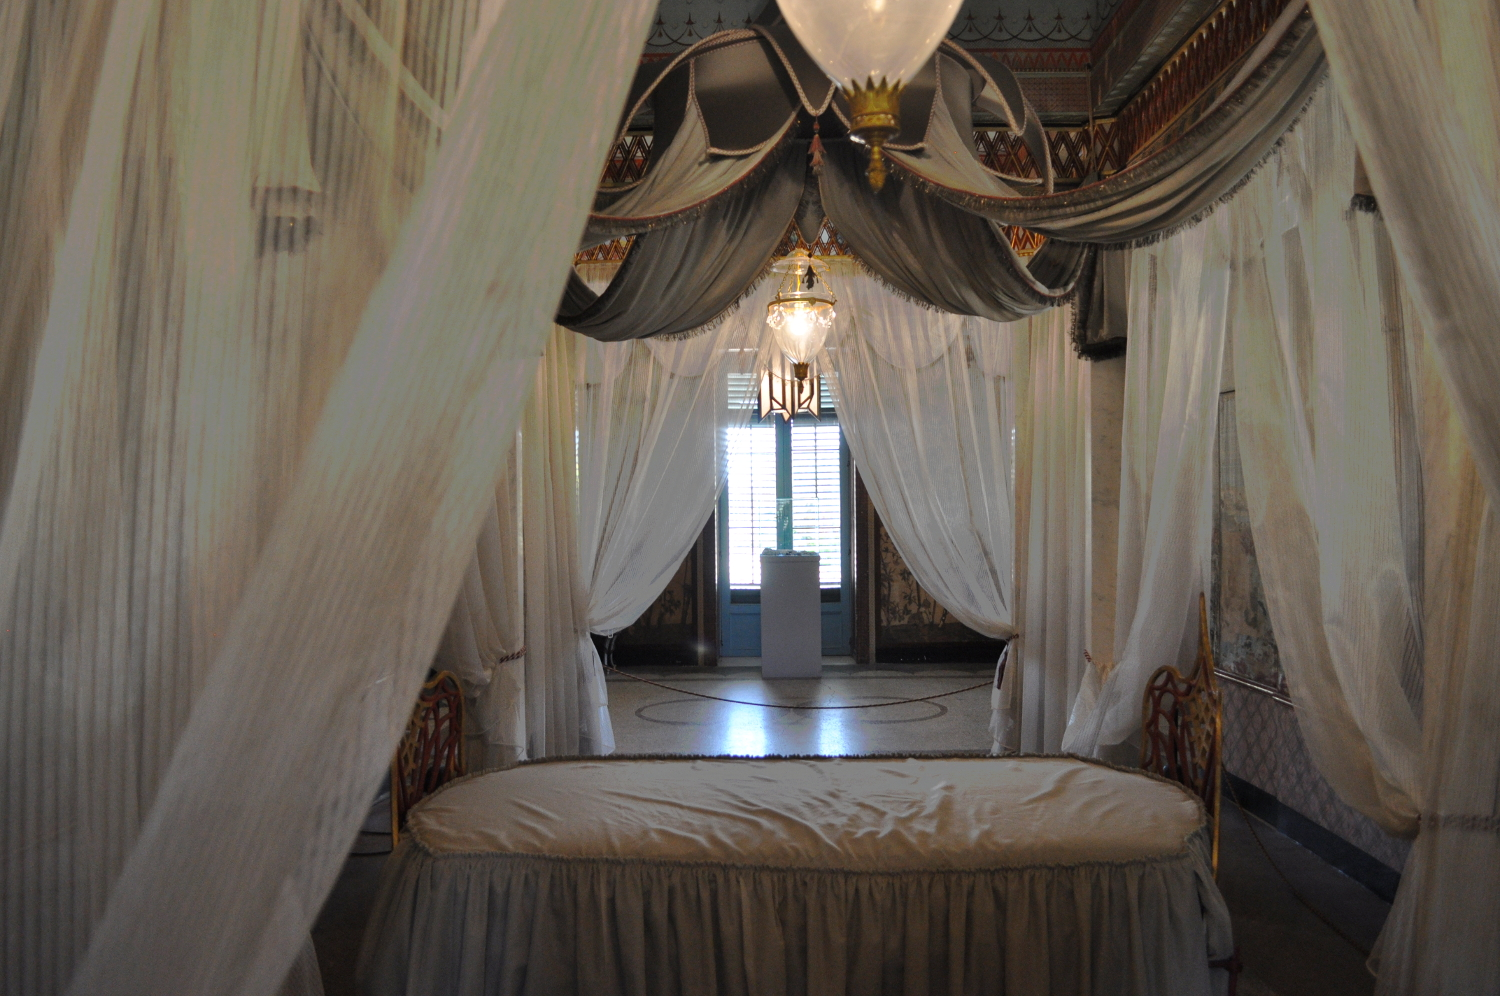 rocaille-blog-palazzina-cinese-palermo-37